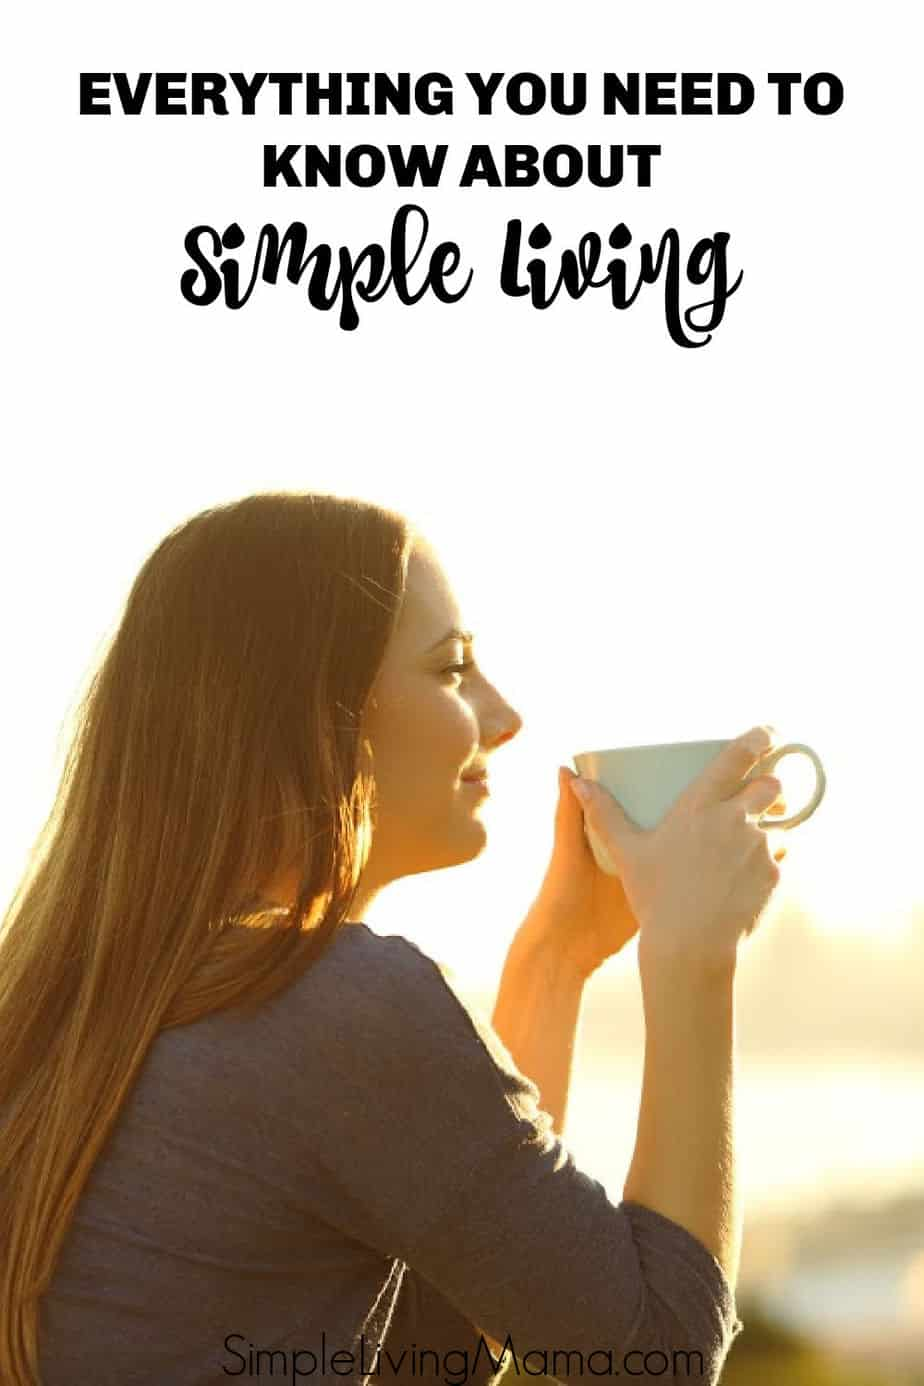 Everything you need to know about simple living